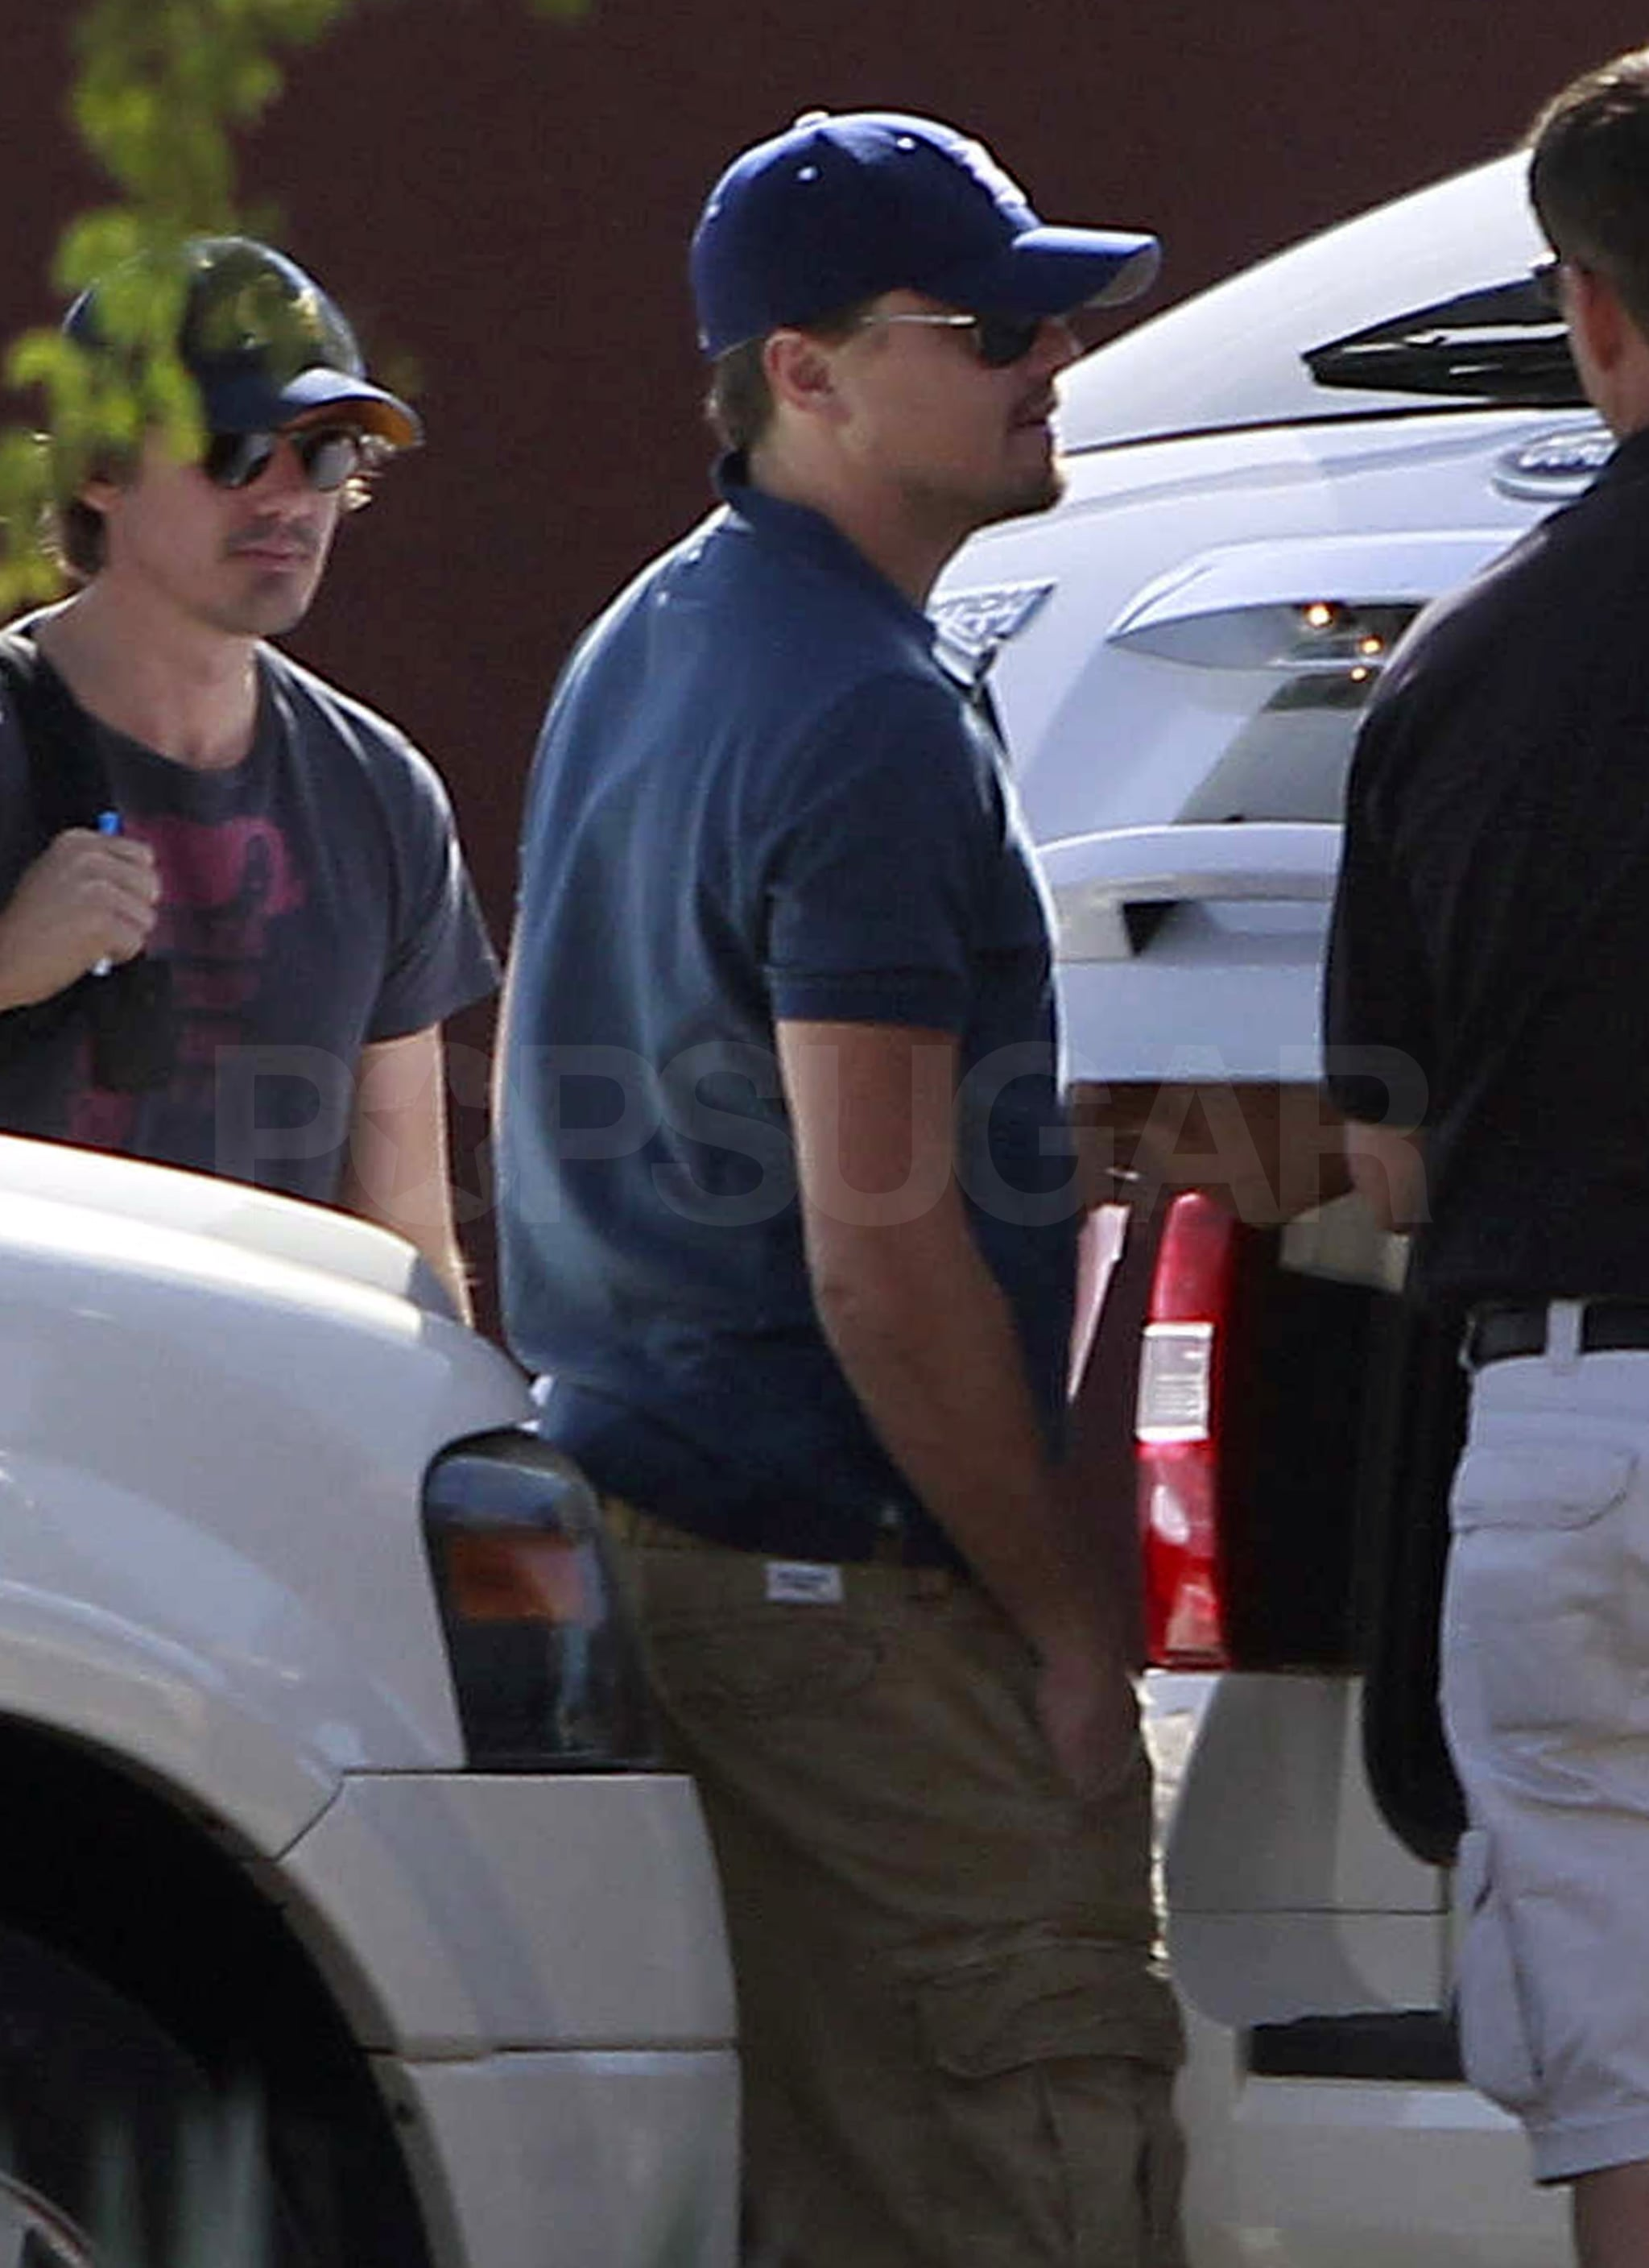 Leonardo DiCaprio was joined by his best friend Lukas Haas on a quick getaway to Mexico.